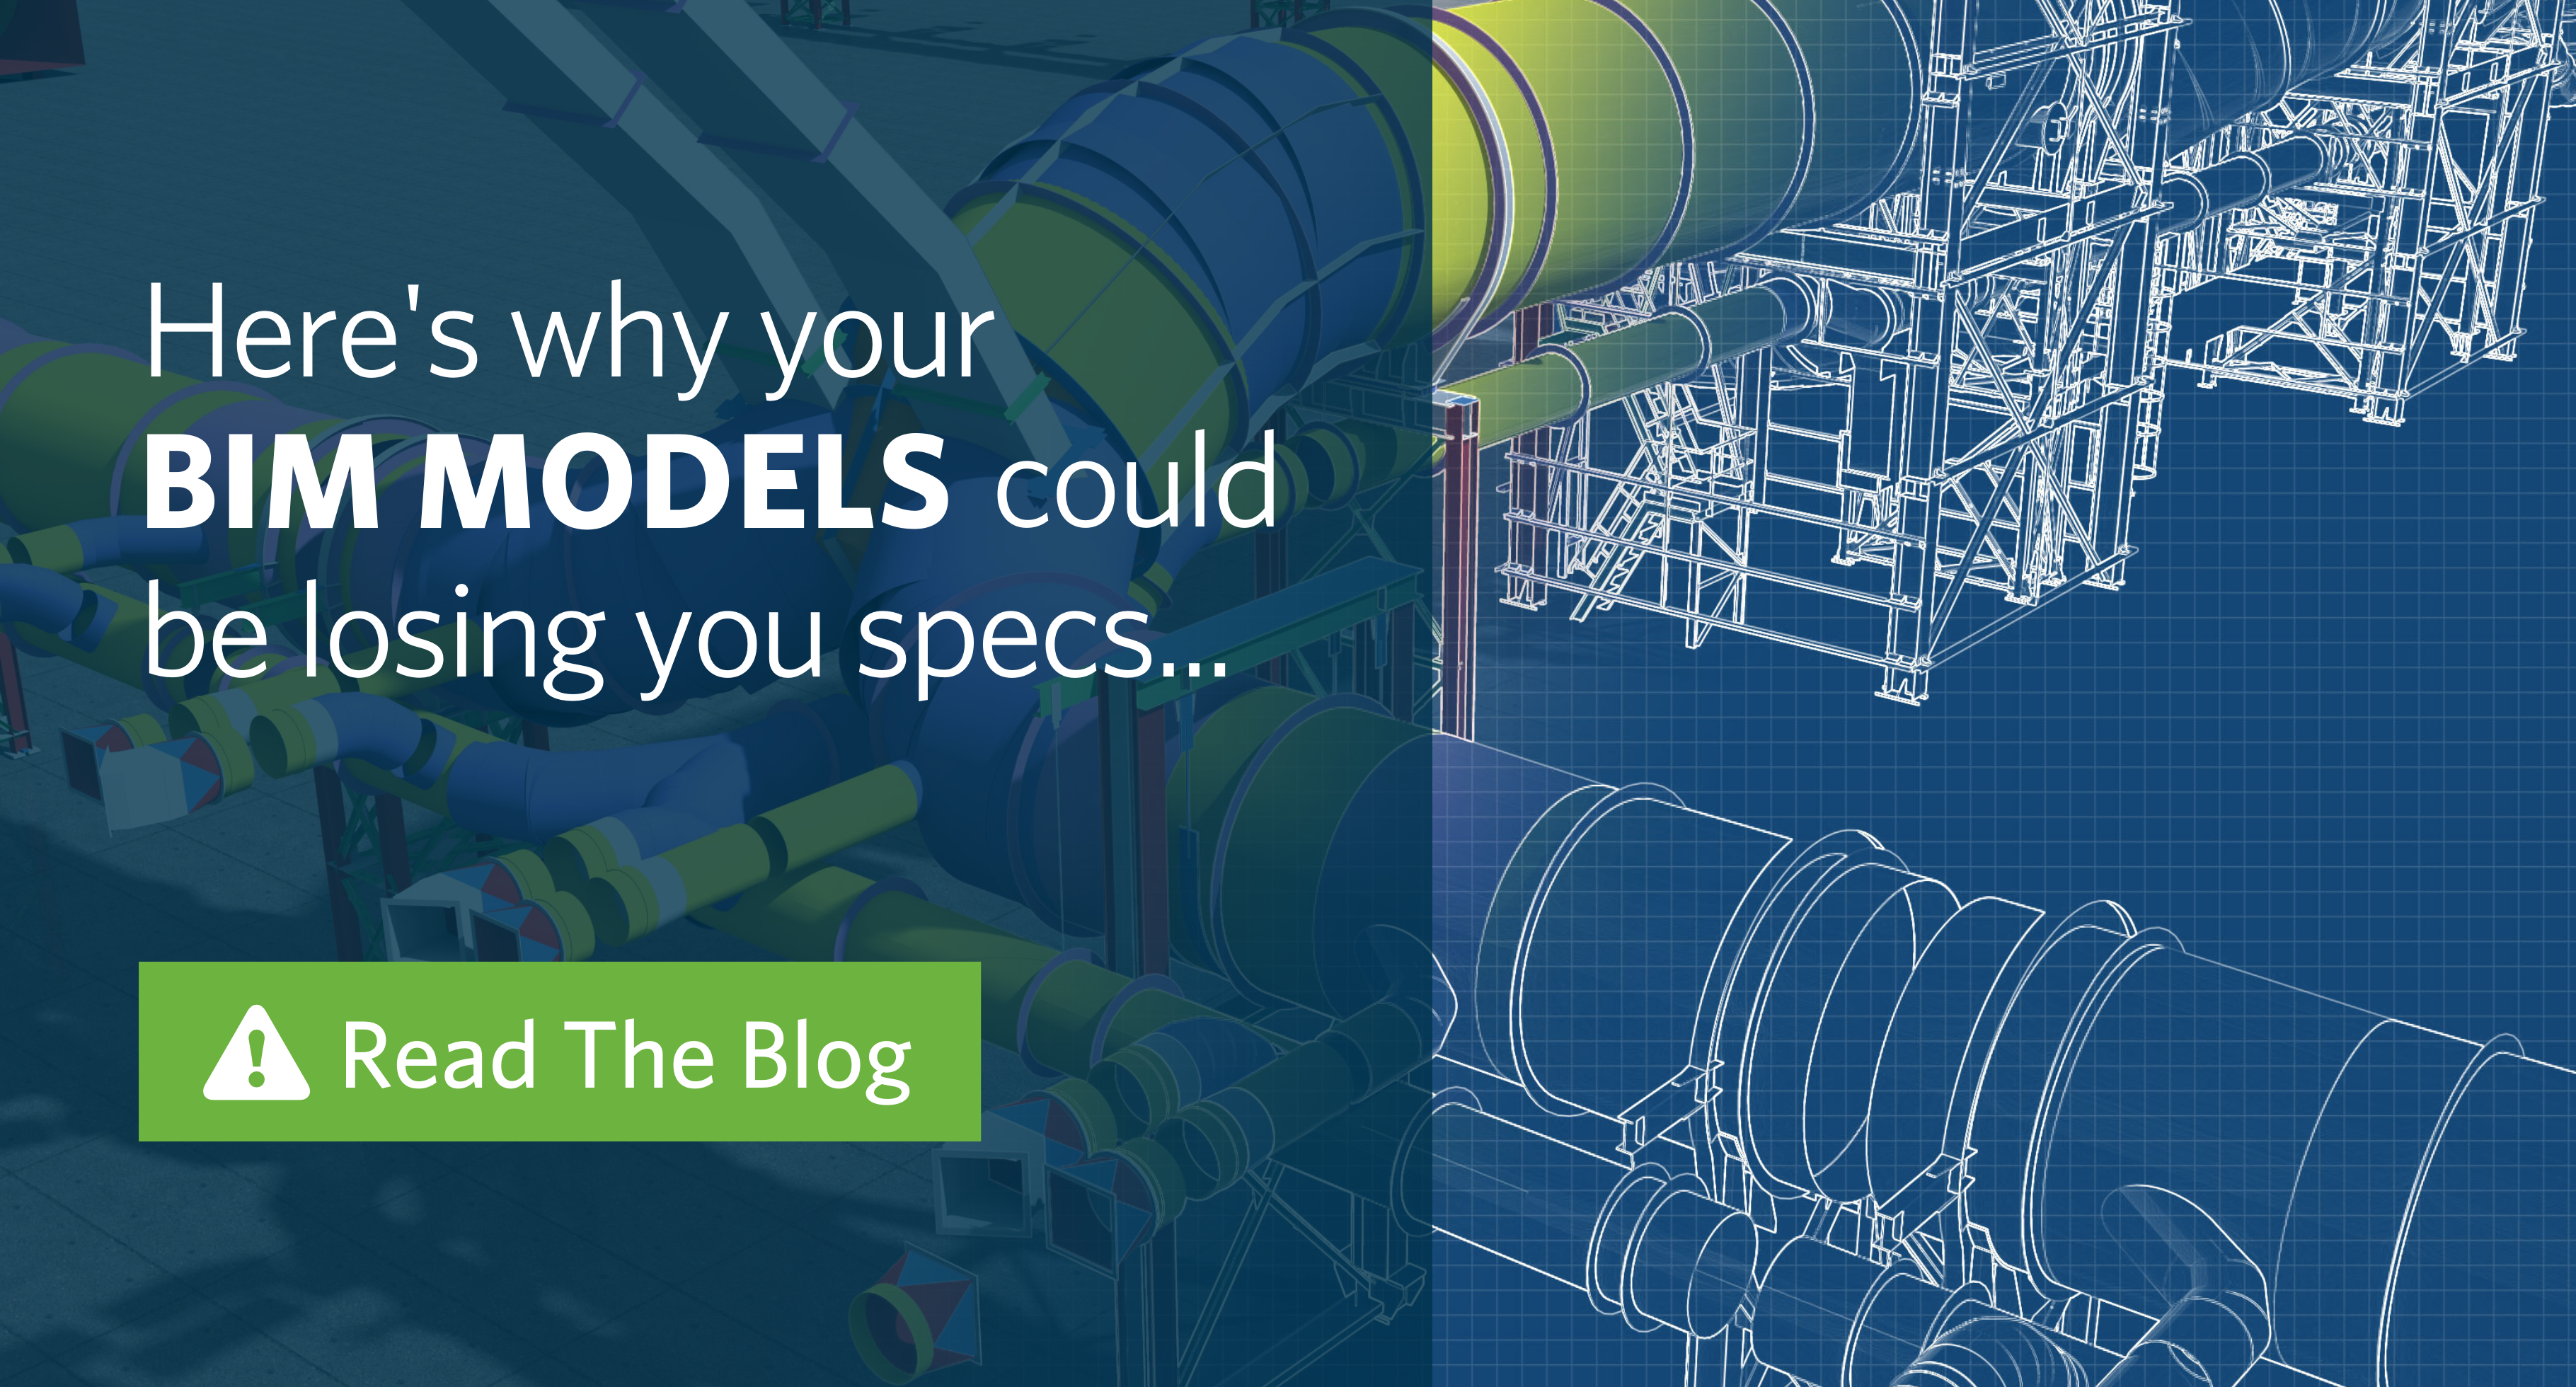 Why Your BIM Models Could Be Losing You Specs...